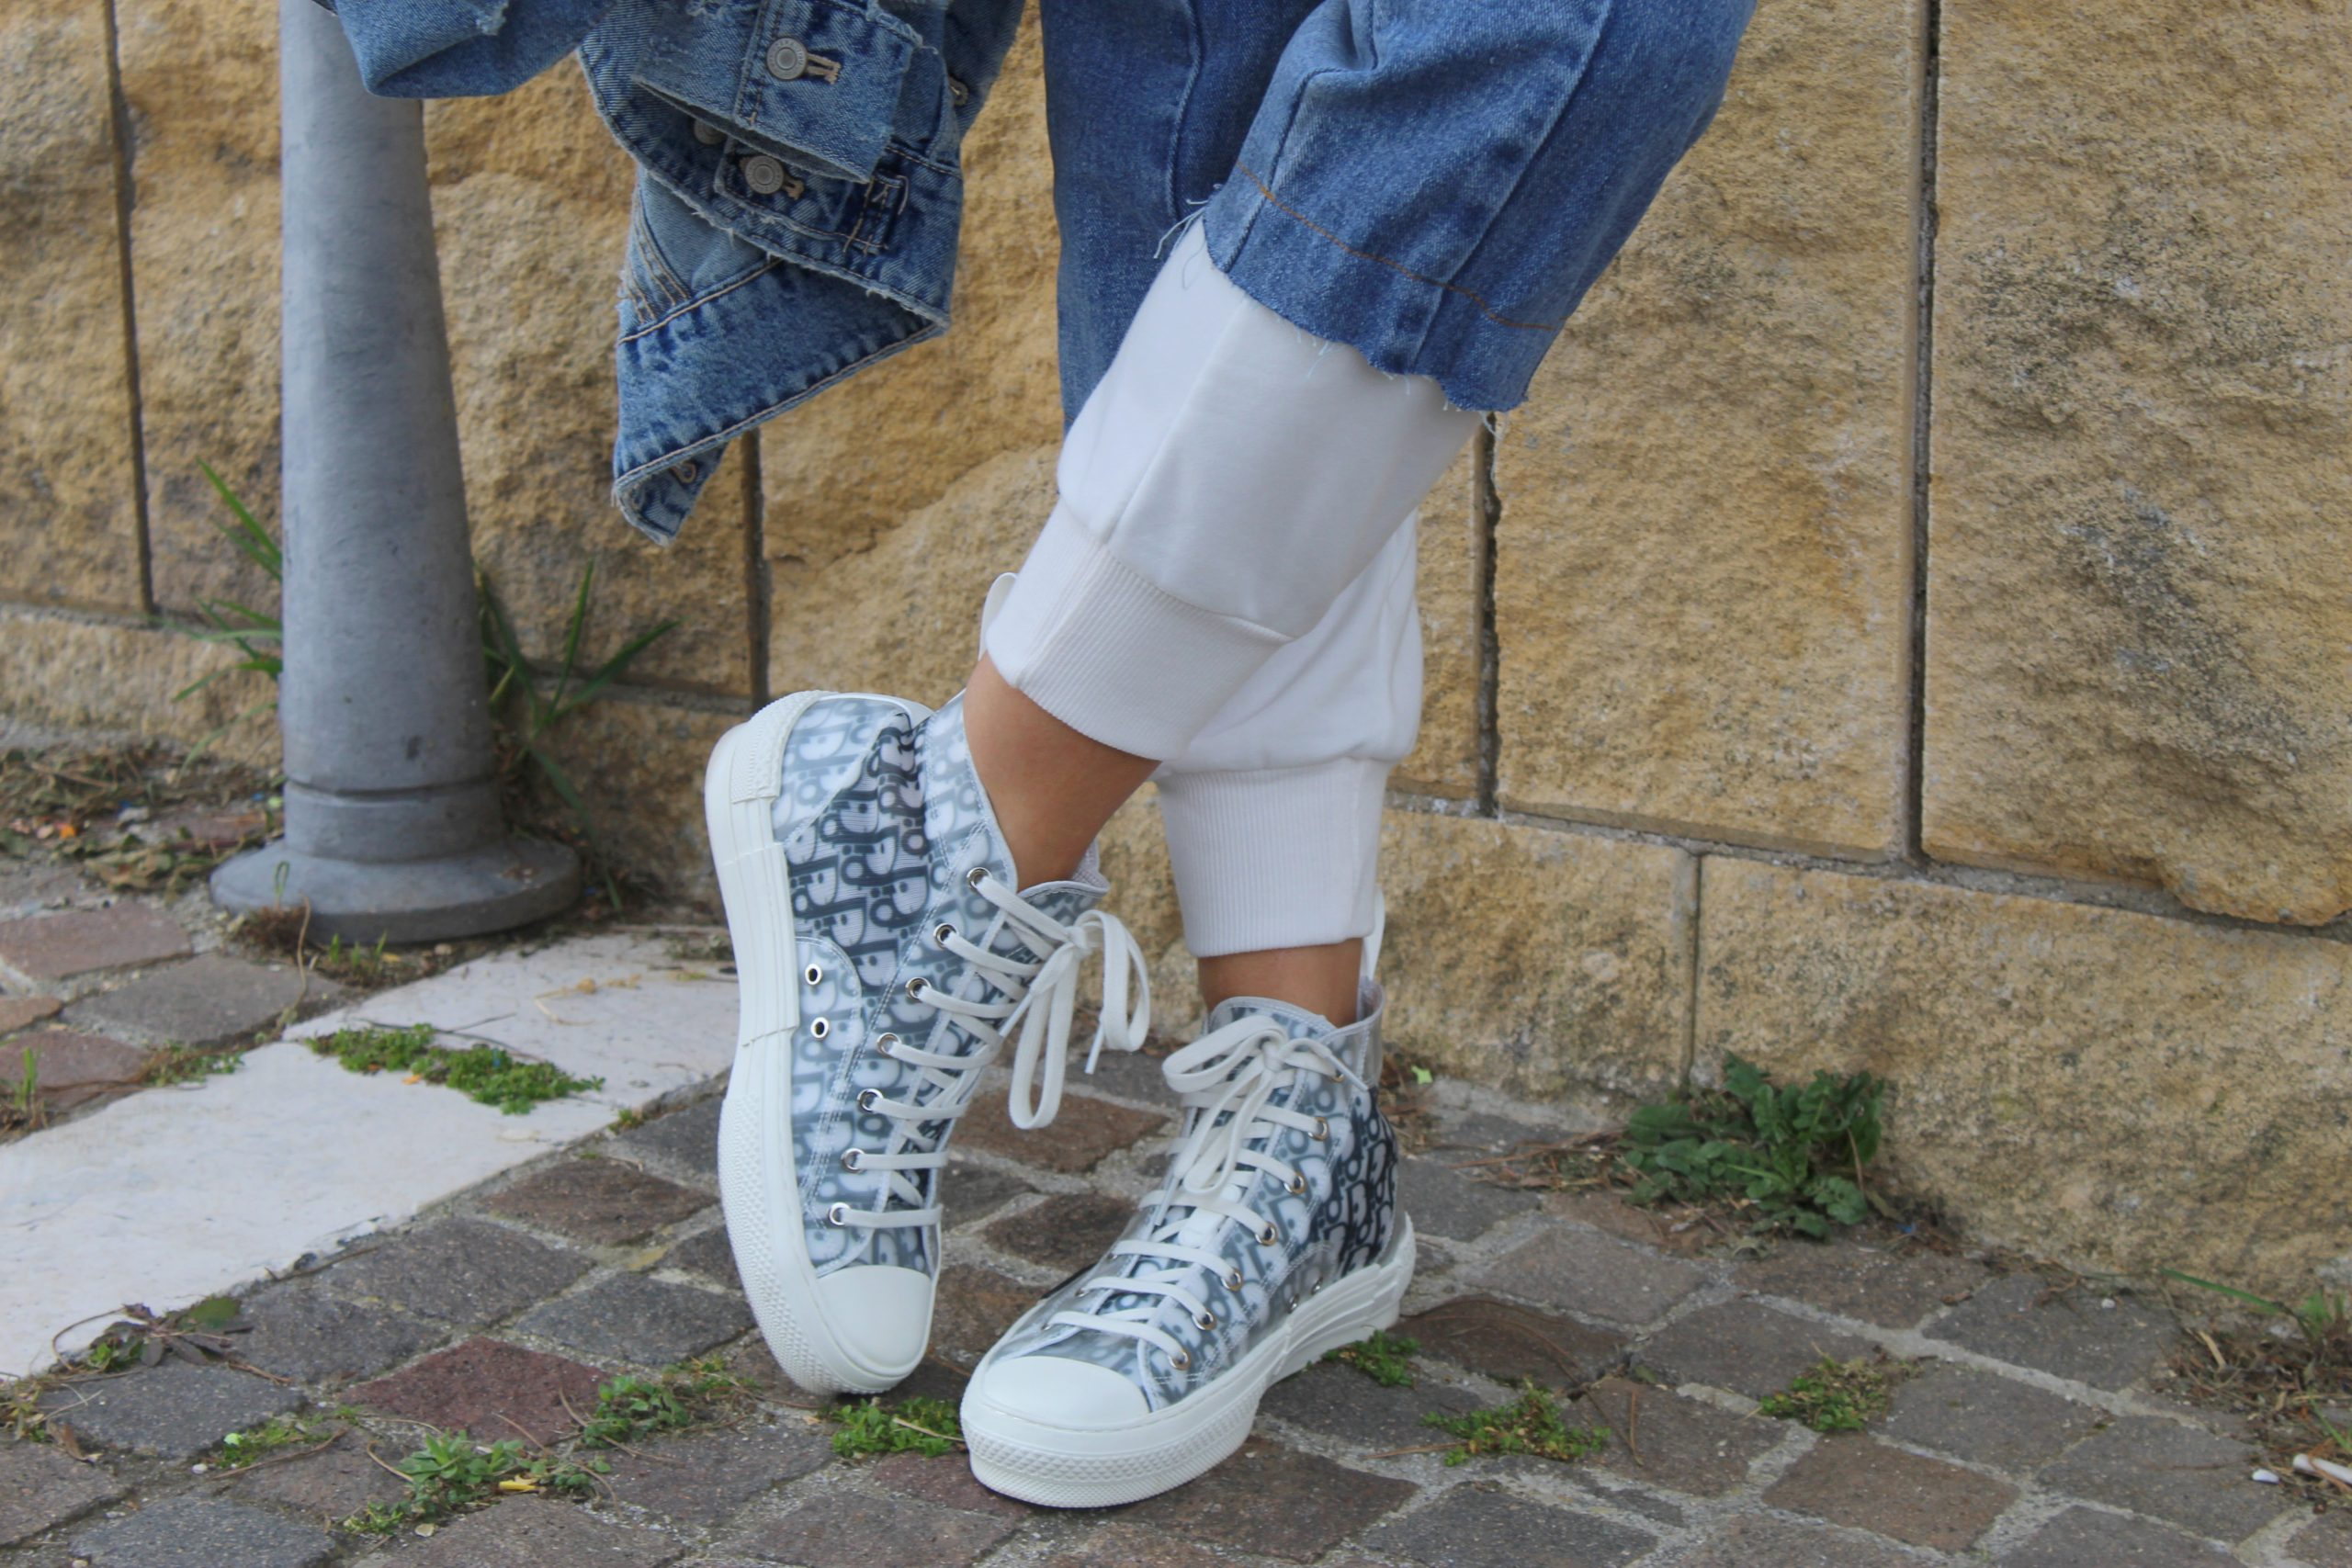 Joggers white and jeans combo Dior sneakers Spring Trend Paola Lauretano